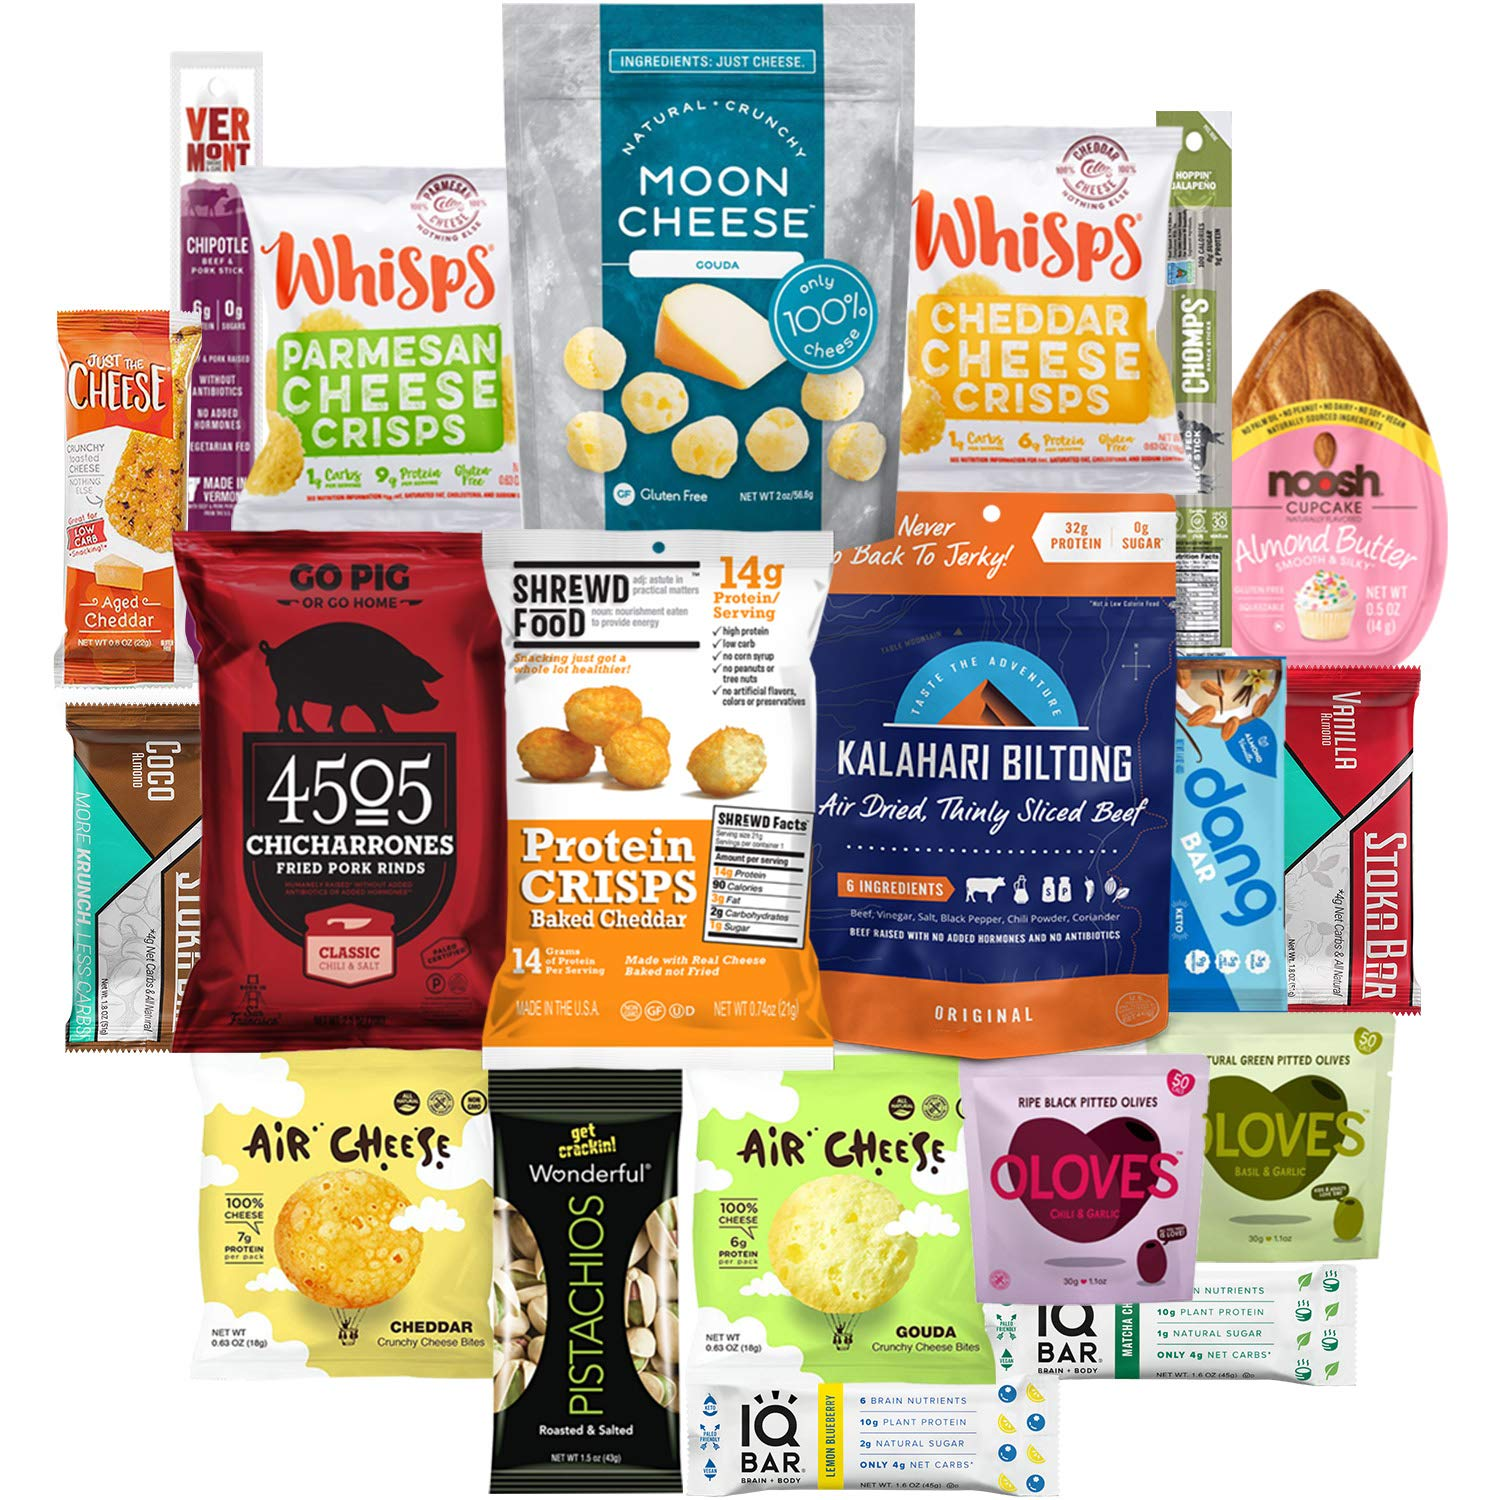 Keto Snacks Care Package (20 Count) : Variety of Ketogenic Friendly & Low Carb - Protein Bars, Cheese Crisps, Grass Fed Meat Sticks Bars, Pork Rinds, Biltong, Nuts, Candy In Healthy Snack Gift Box